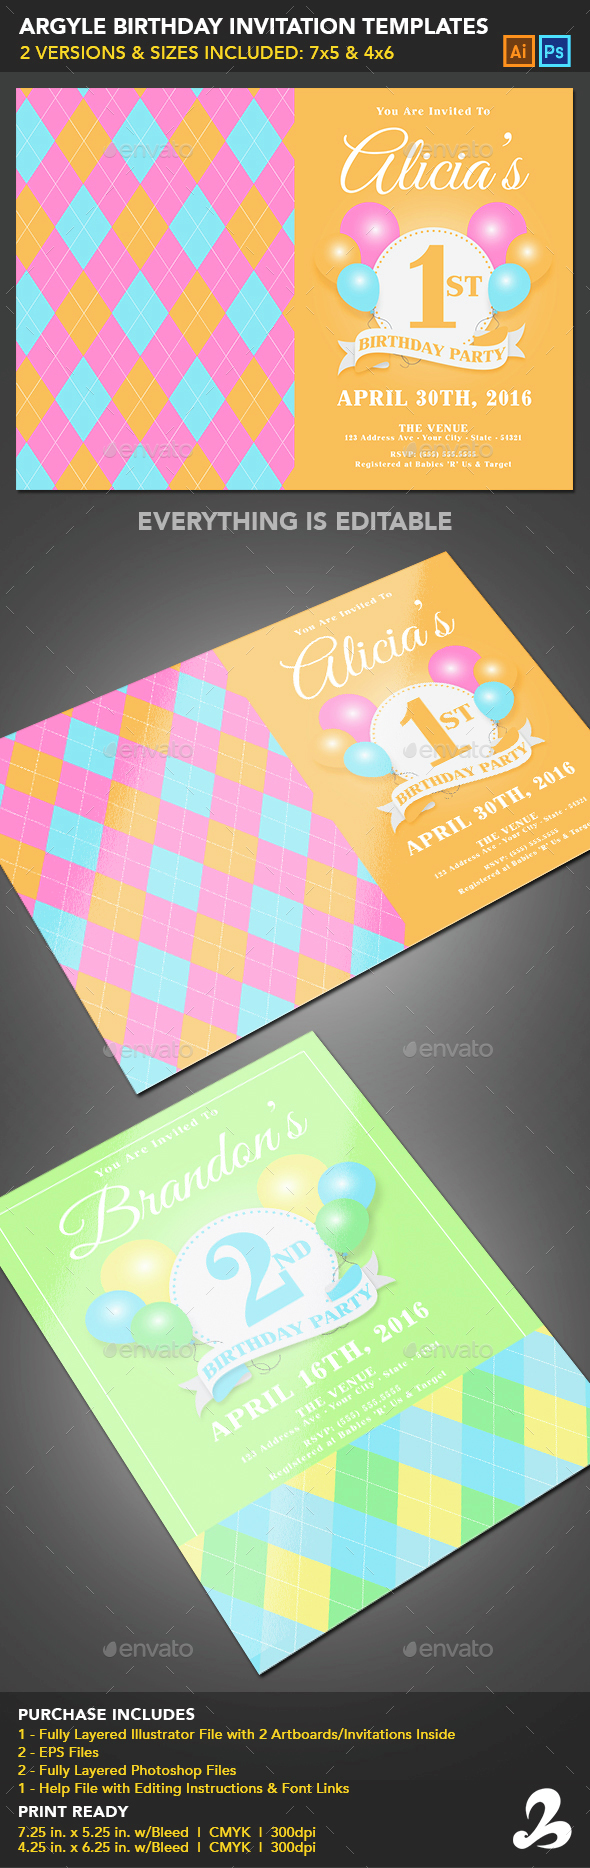 Birthday Invitation Templates - Argyle